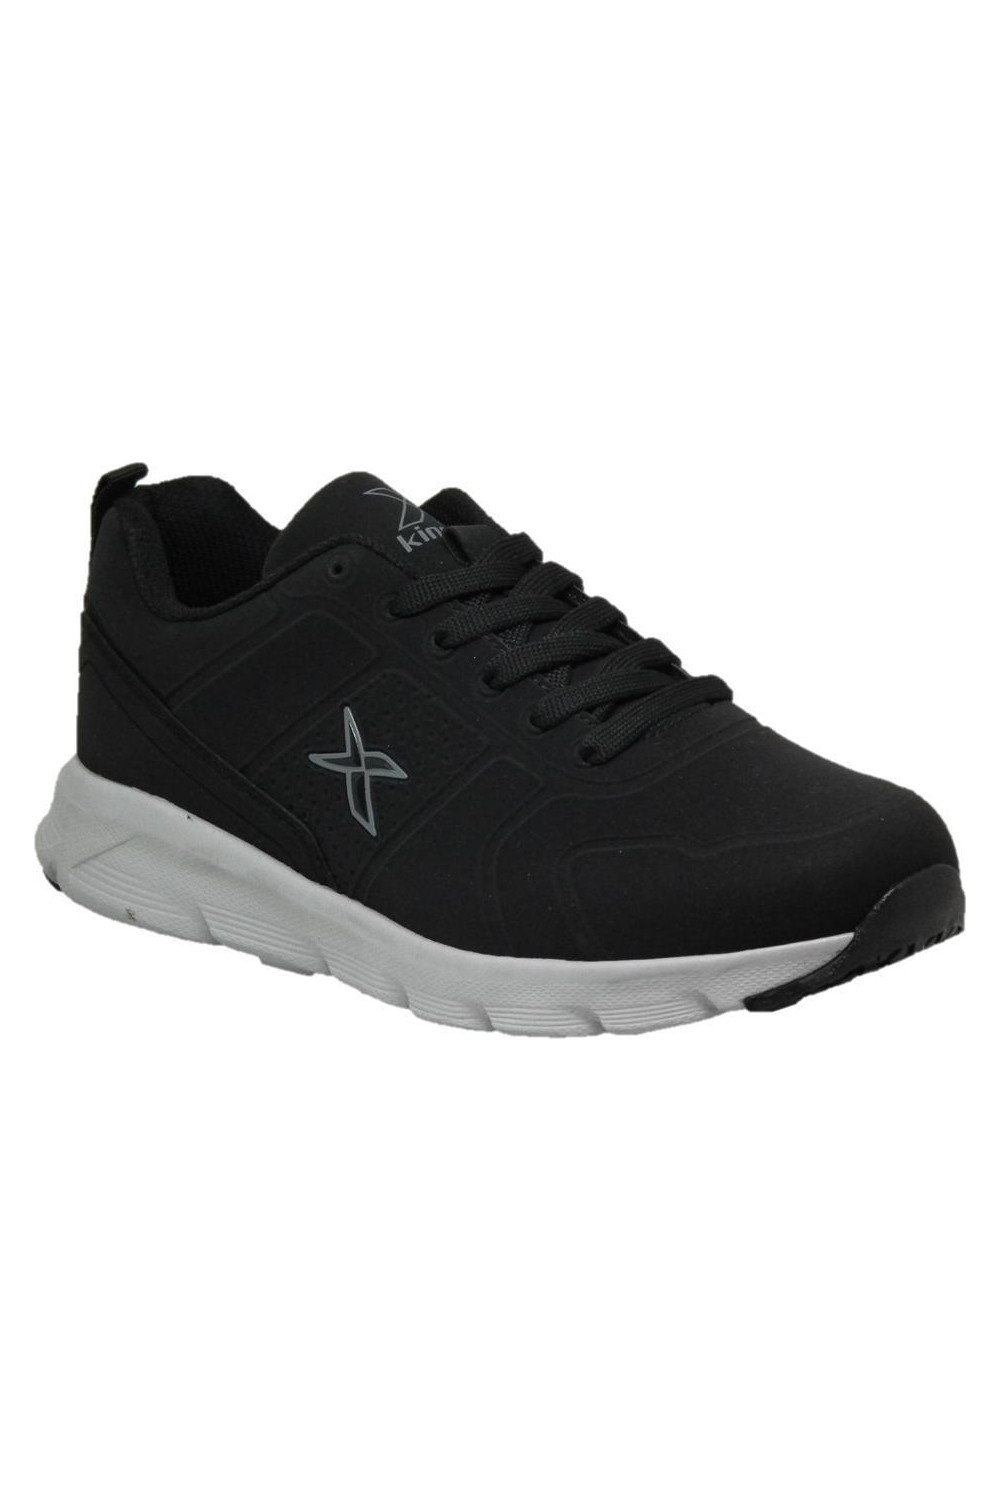 Kinetix Men's Sport Shoes